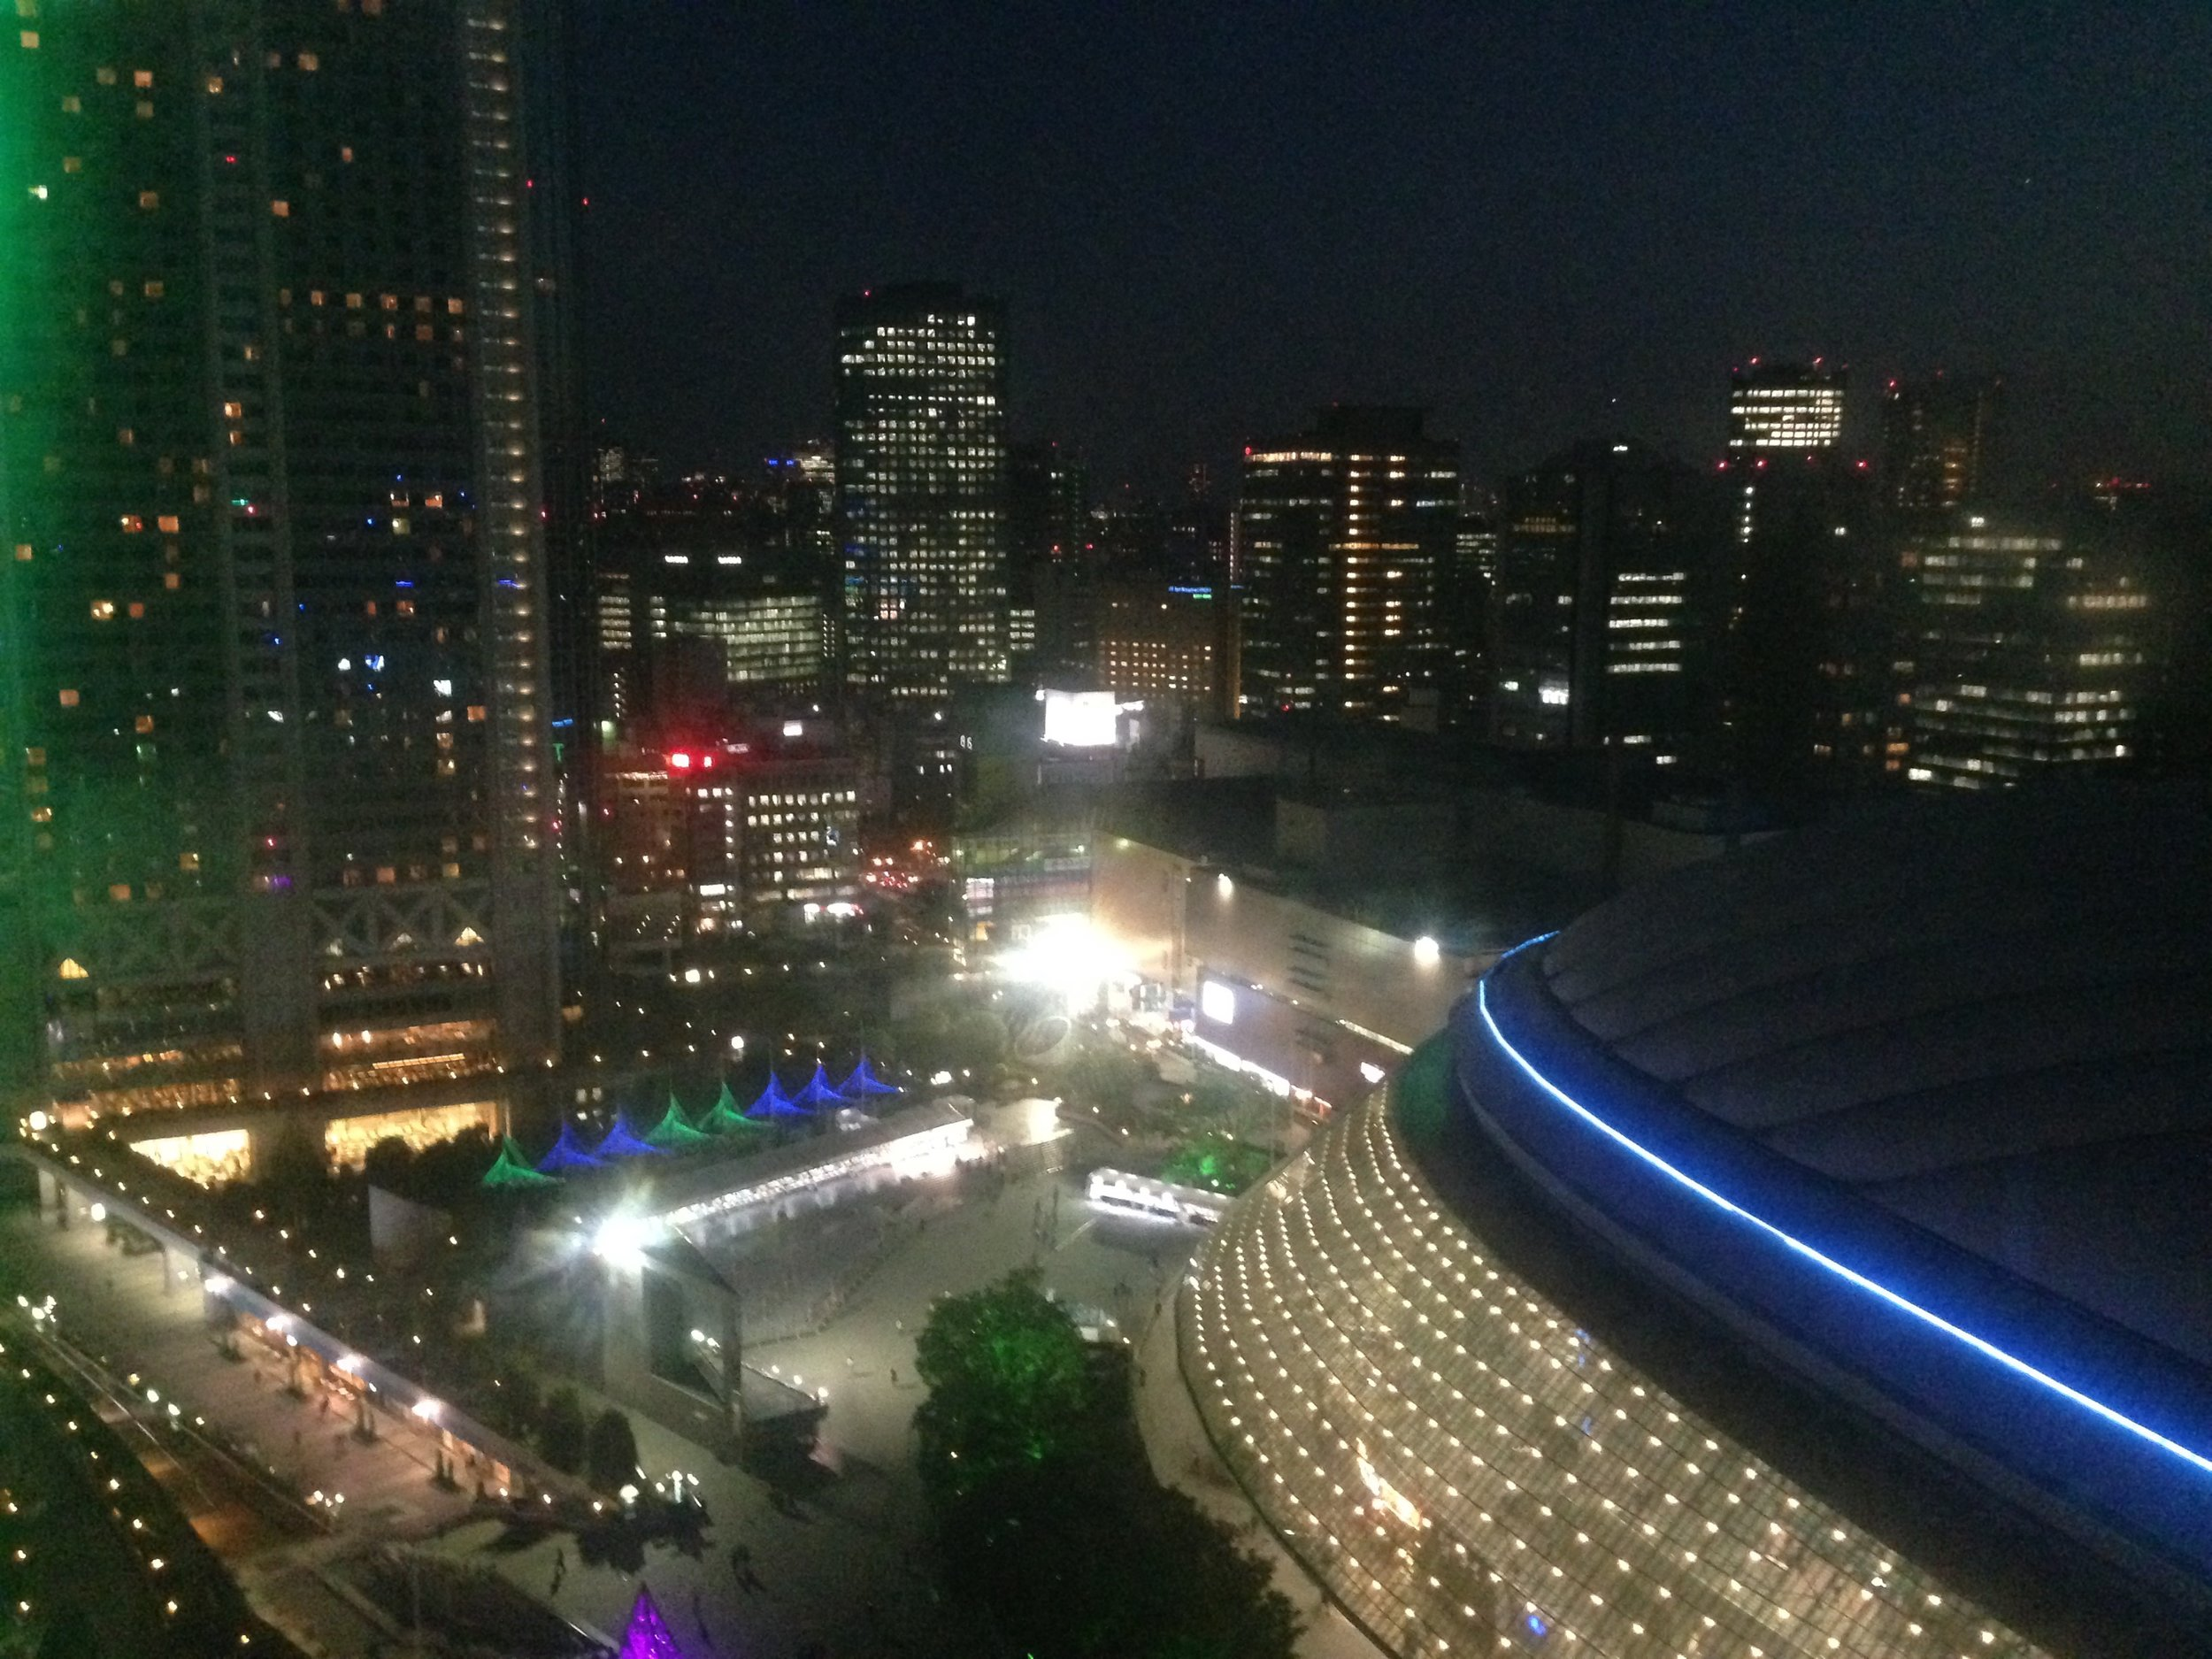 Goodnight, Tokyo. Goodnight, Dome. See you again one day!